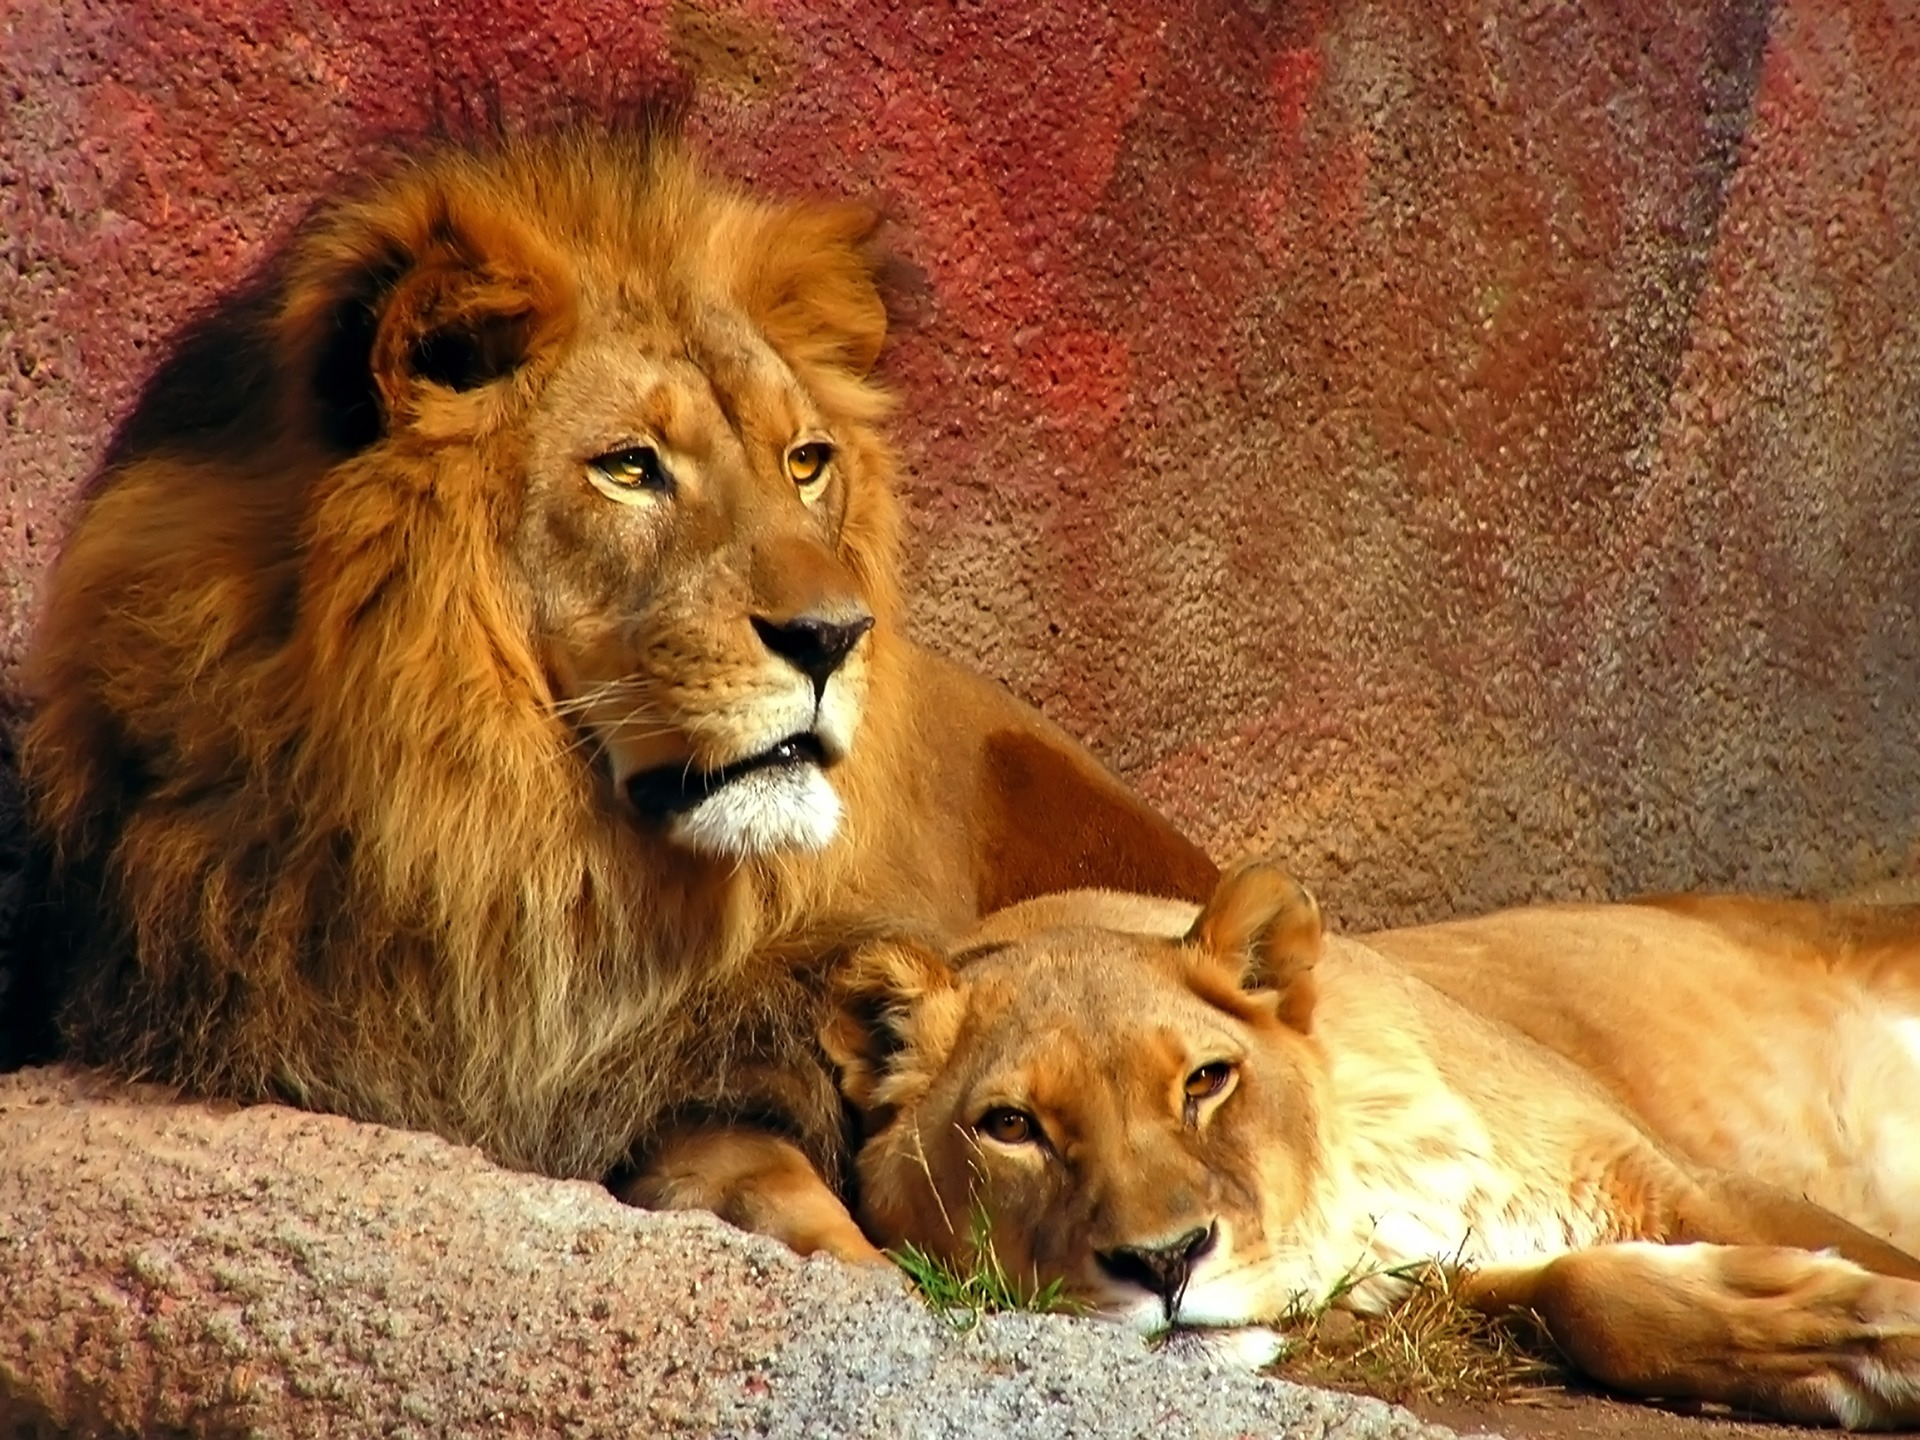 Lion wallpaper wallpapers for free download about 3030 wallpapers lions wallpaper big cats animals voltagebd Gallery